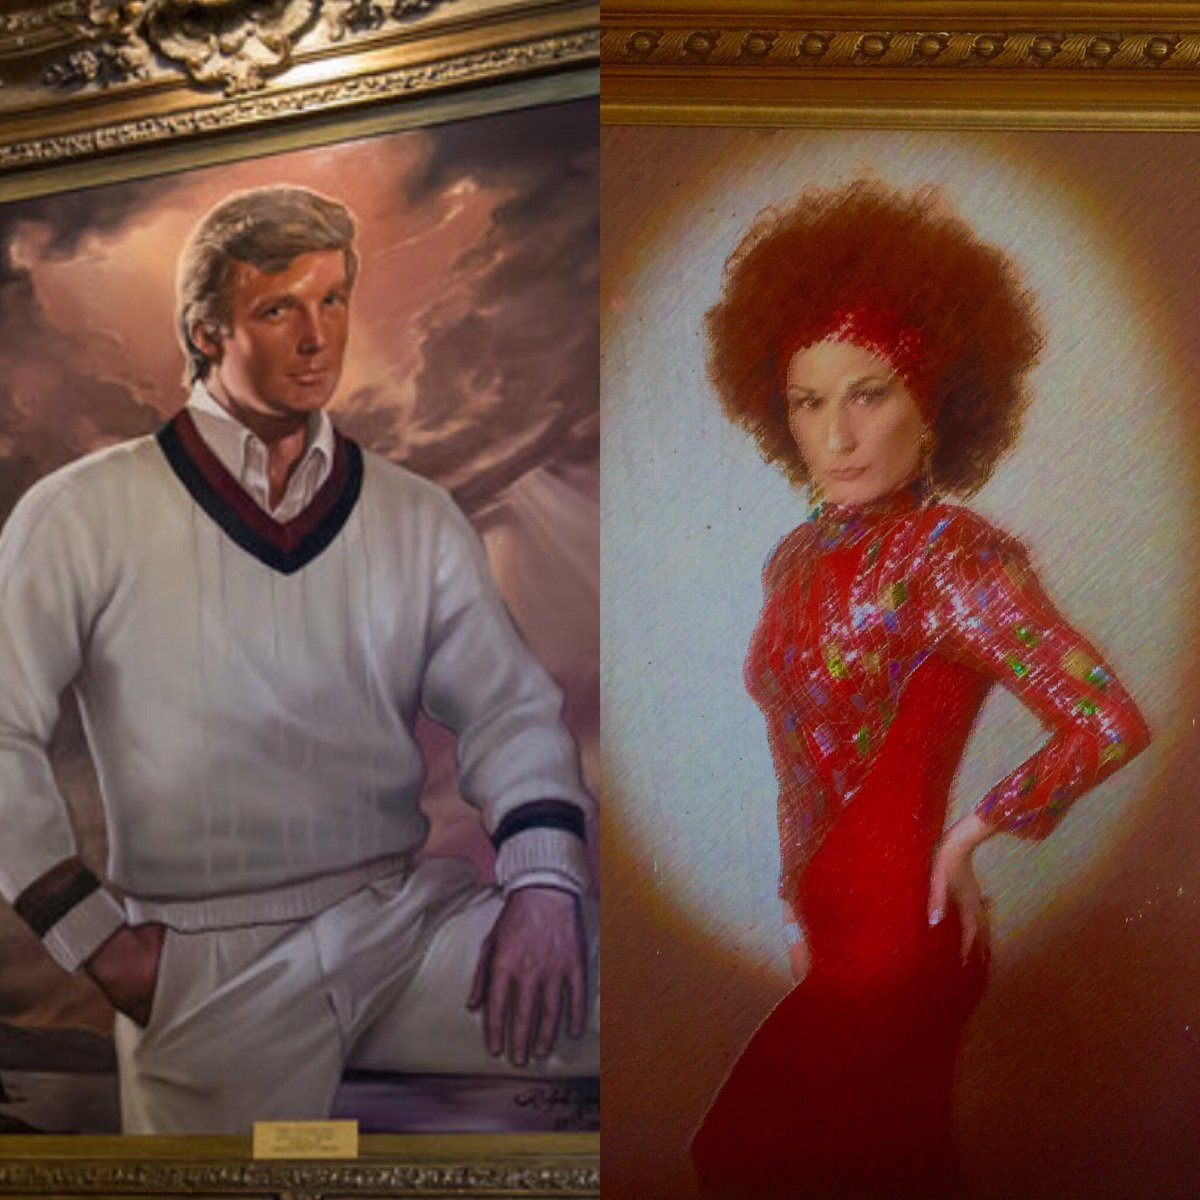 Hired @realDonaldTrump's  portrait artist! Can't decide who he captured better. Heart for him, RT for me. https://t.co/yCTosq7DJF